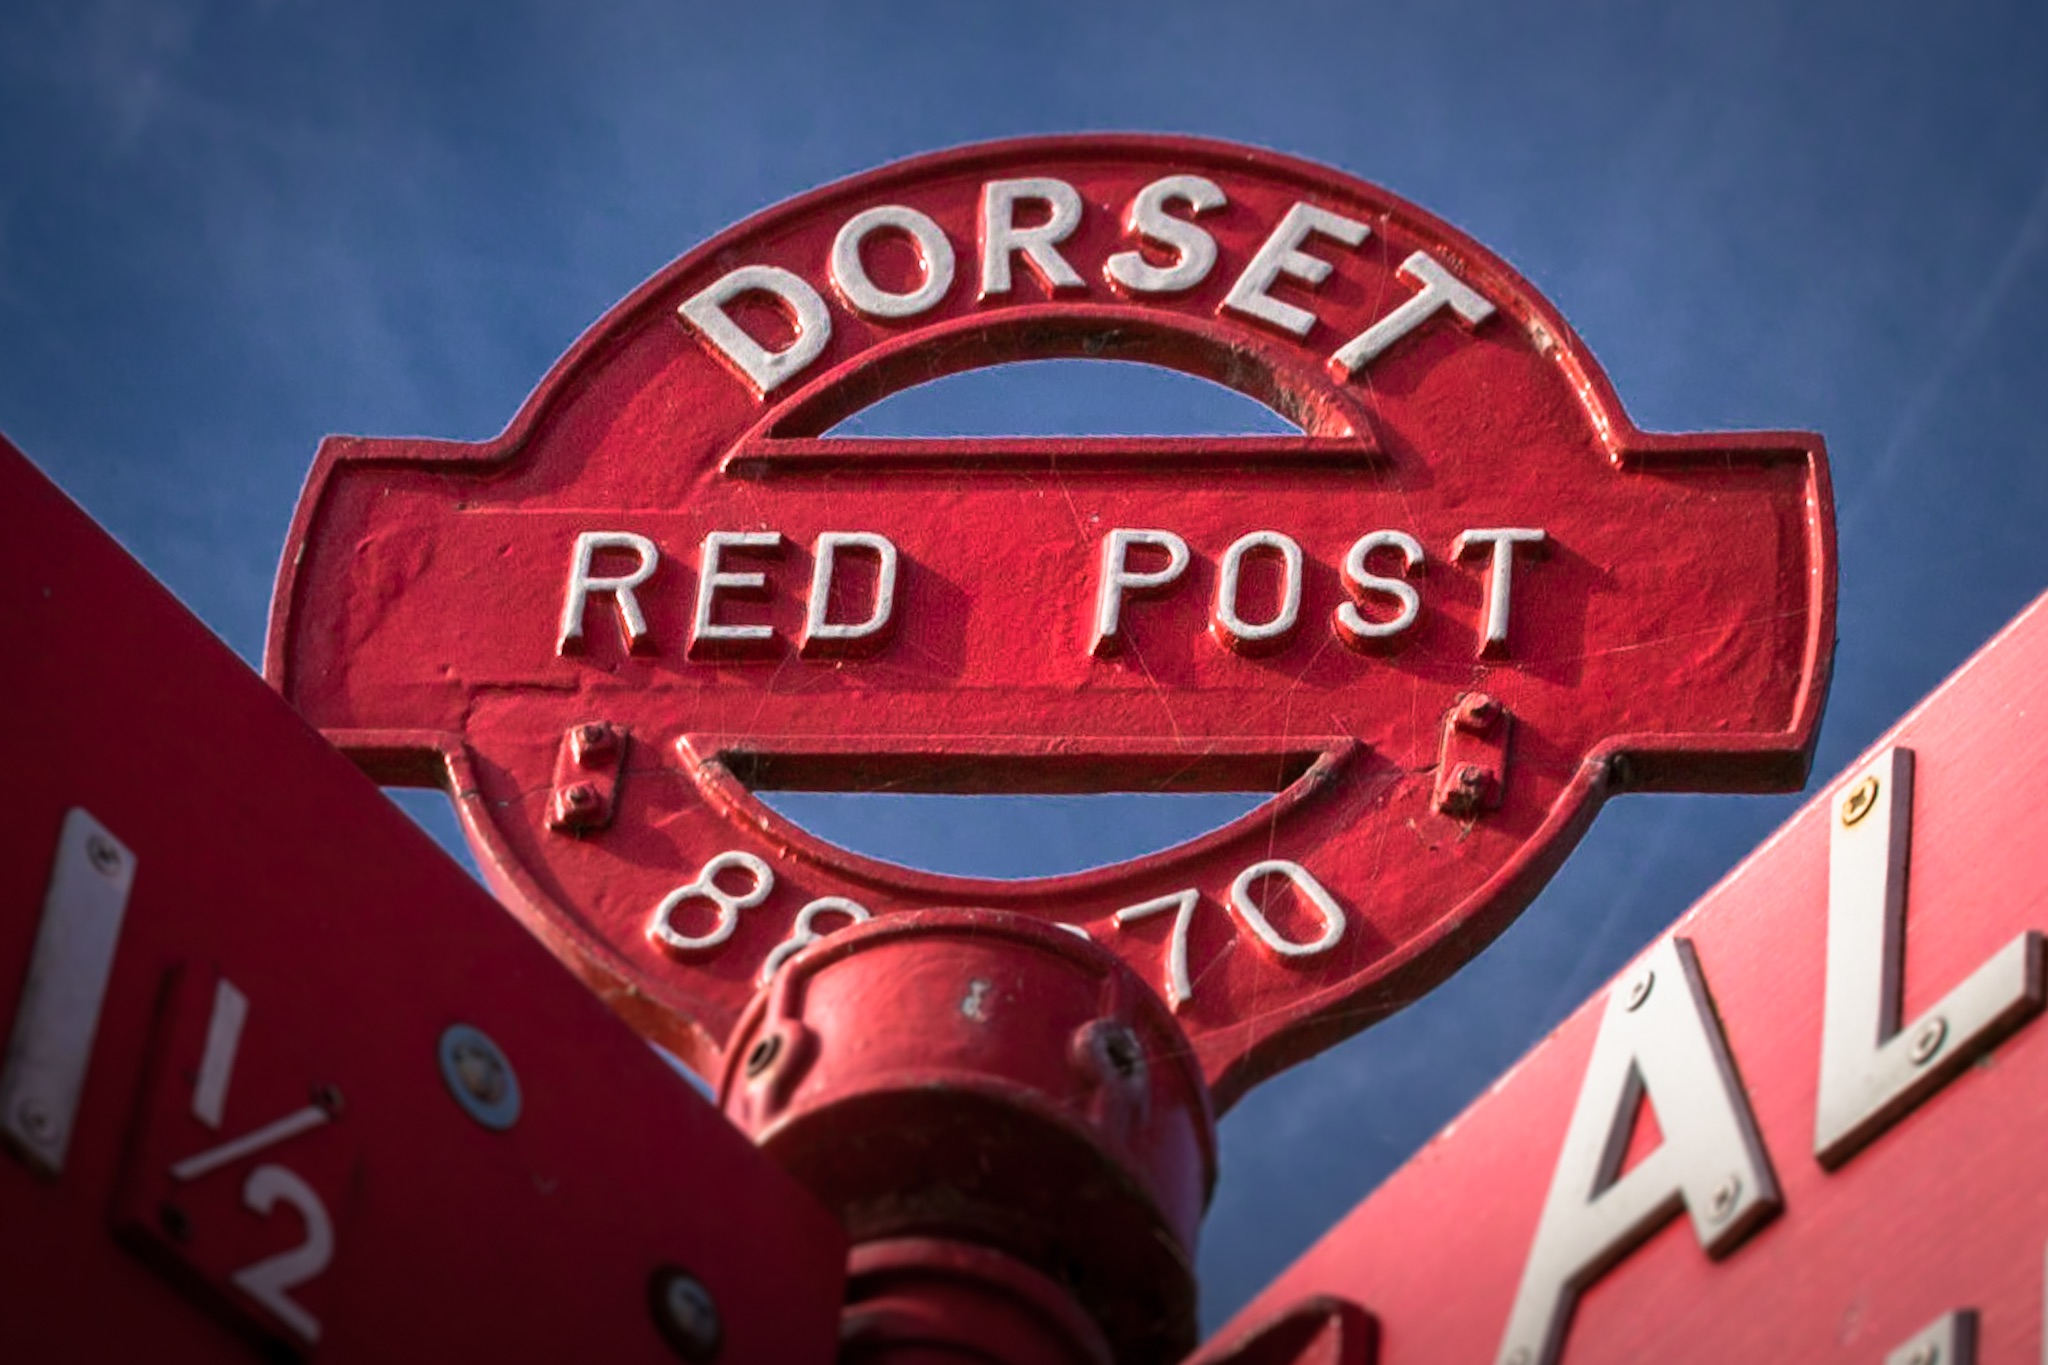 Dorset Red Post